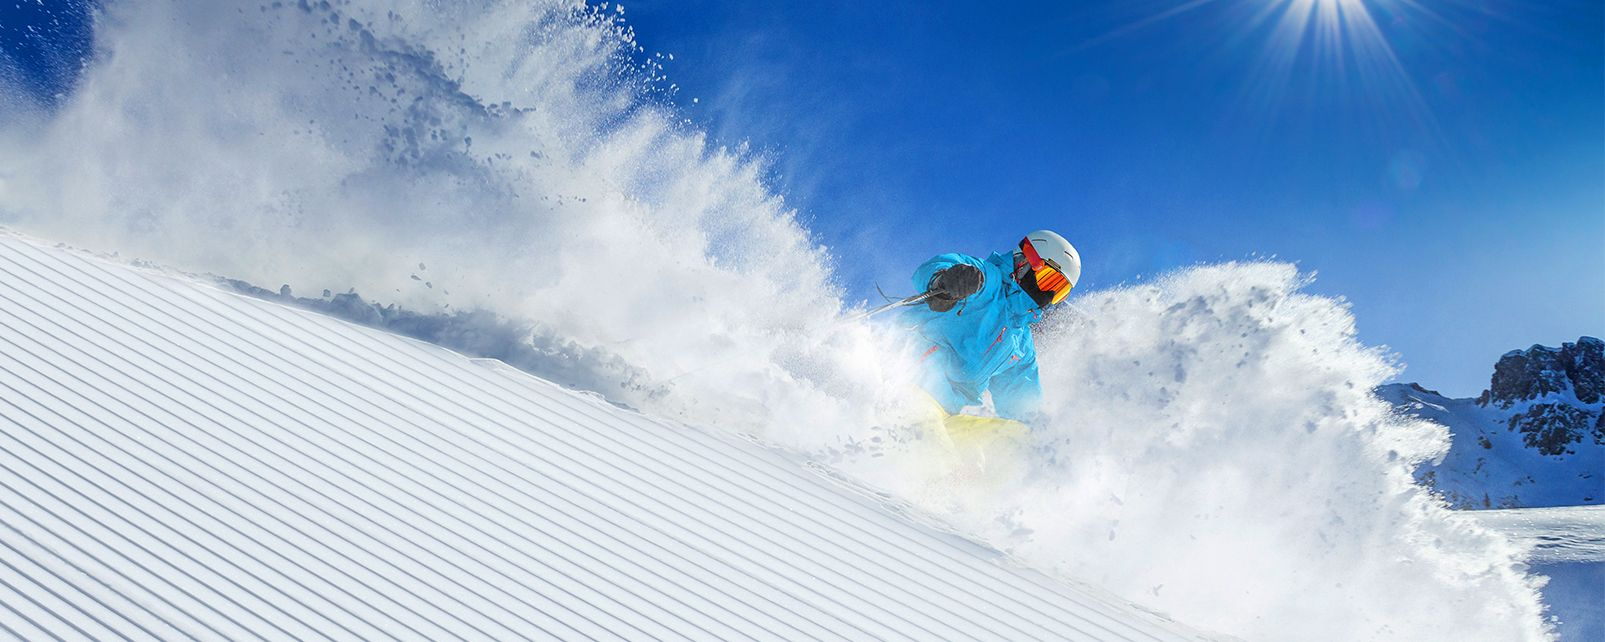 , Les stations de ski, Activities and leisure, Asturias